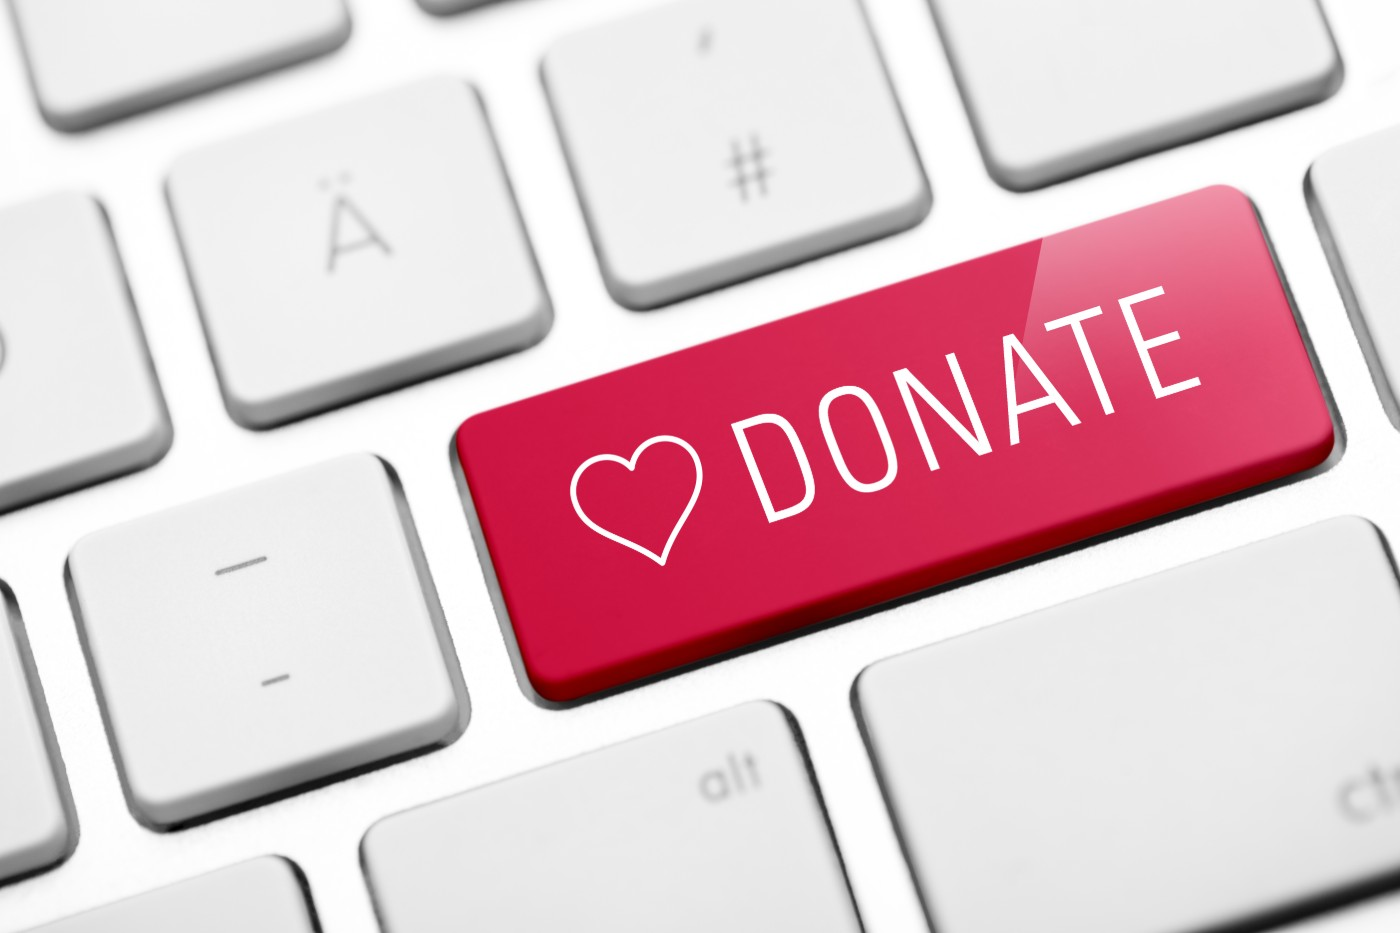 https://tickertapecdn.tdameritrade.com/assets/images/pages/md/Donate: Planning charitable donations, tax deductions